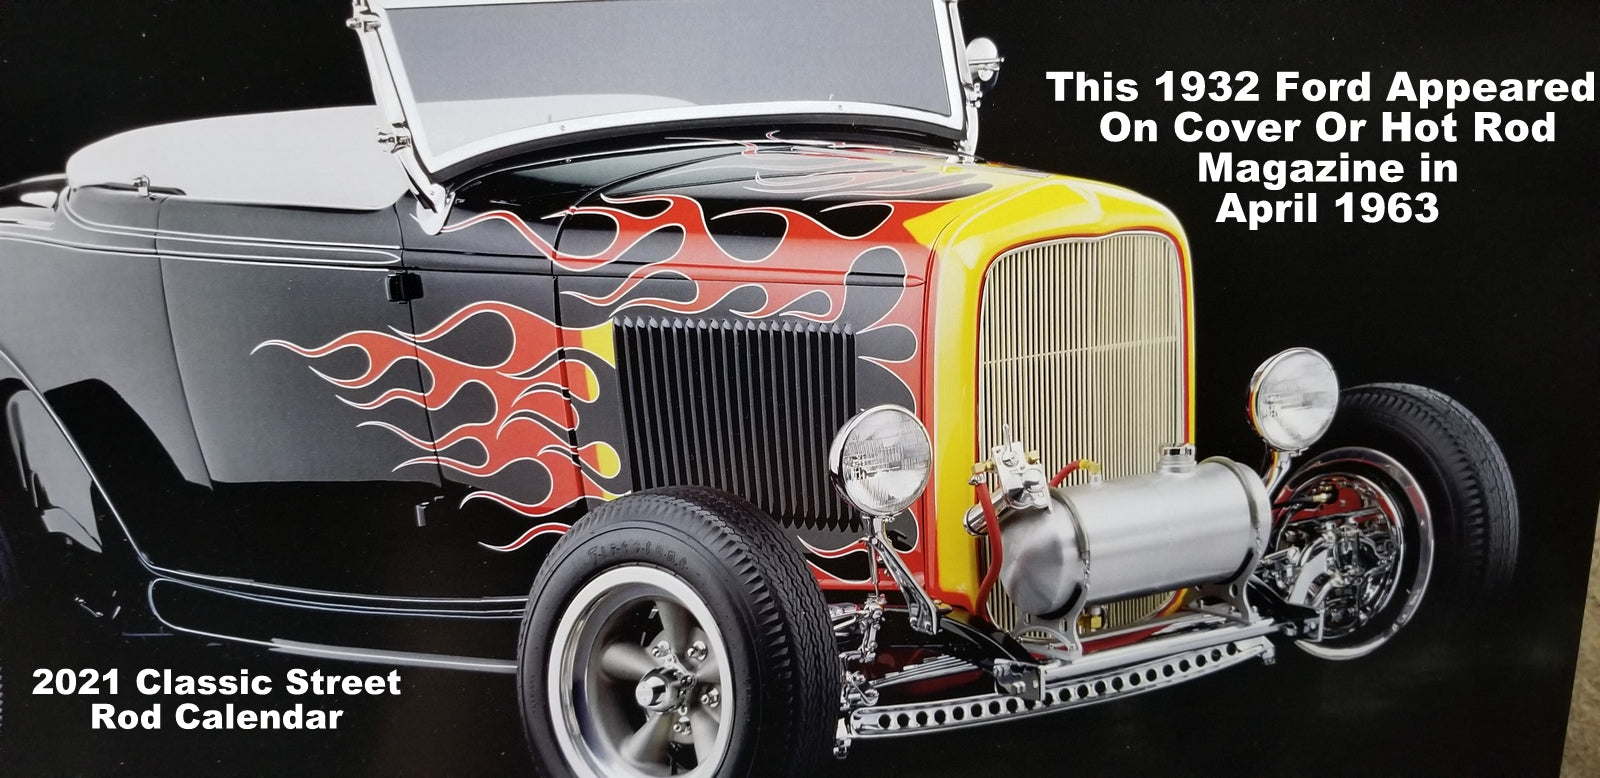 2021 Classic Street Rod Wall Calendar 17'' x 12'' Printed In USA